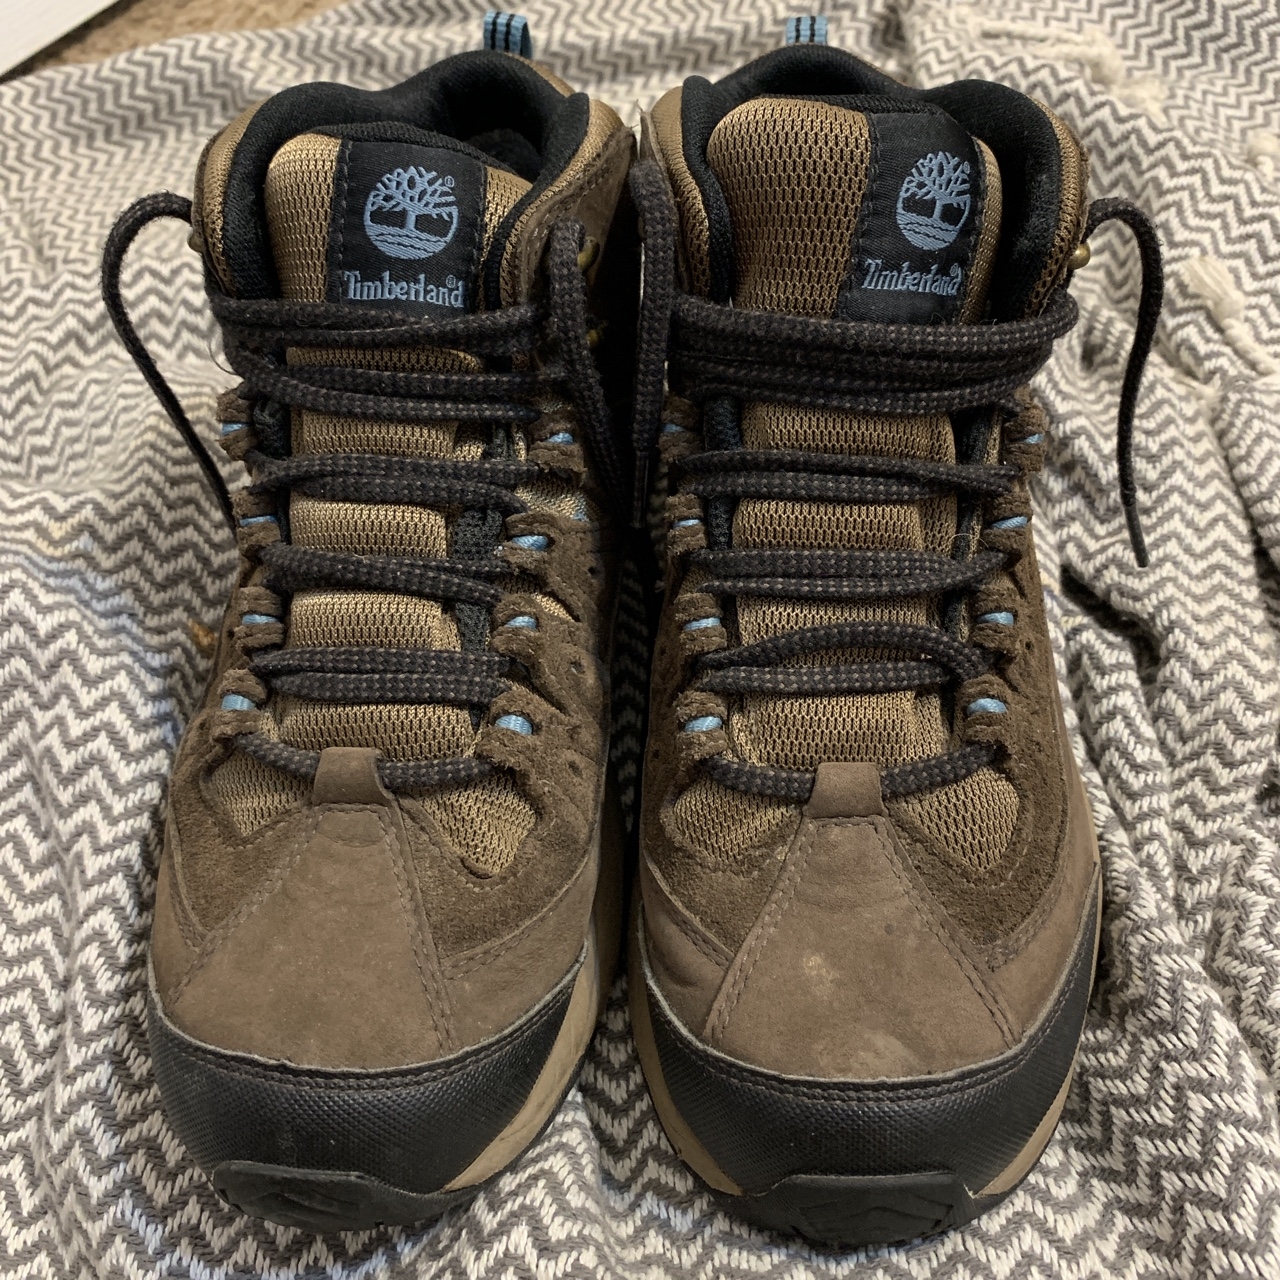 457d3b75052 Genuine leather, timberland gore-tex hiking boots.... - Depop